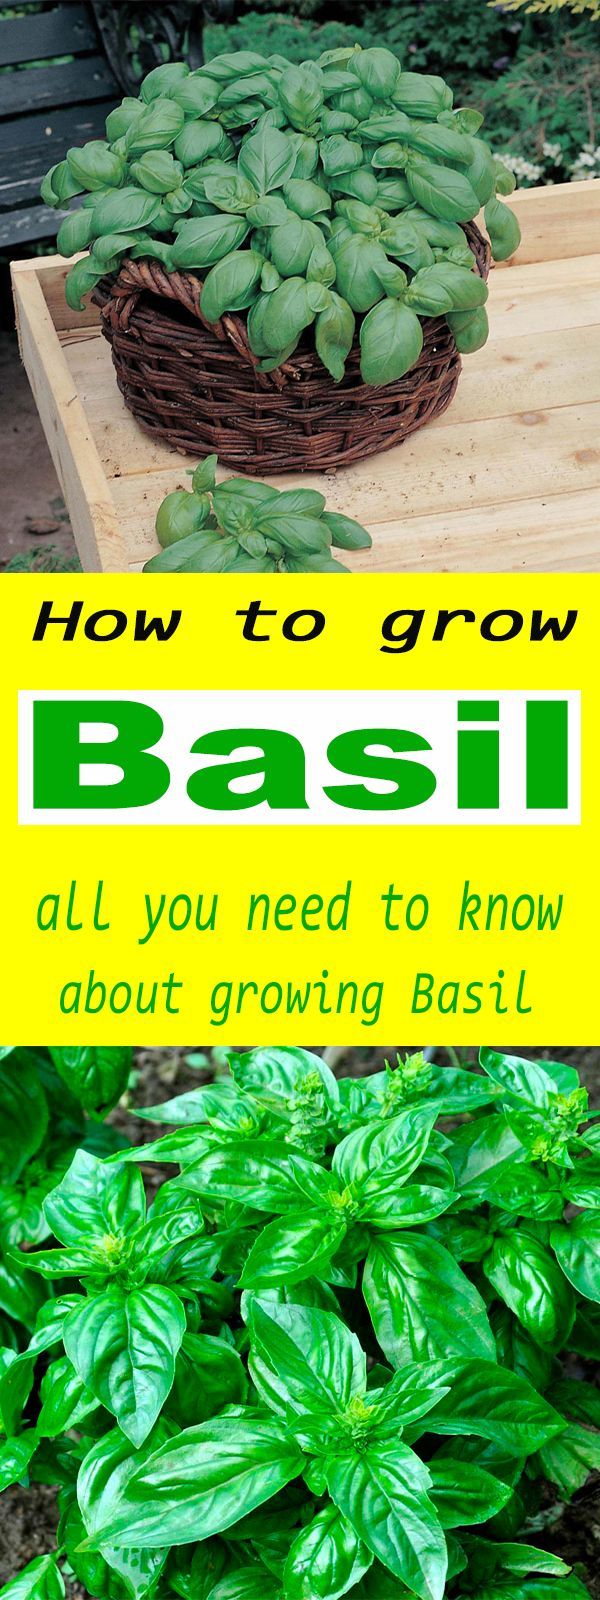 How To Grow Basil – Organic vegetable garden